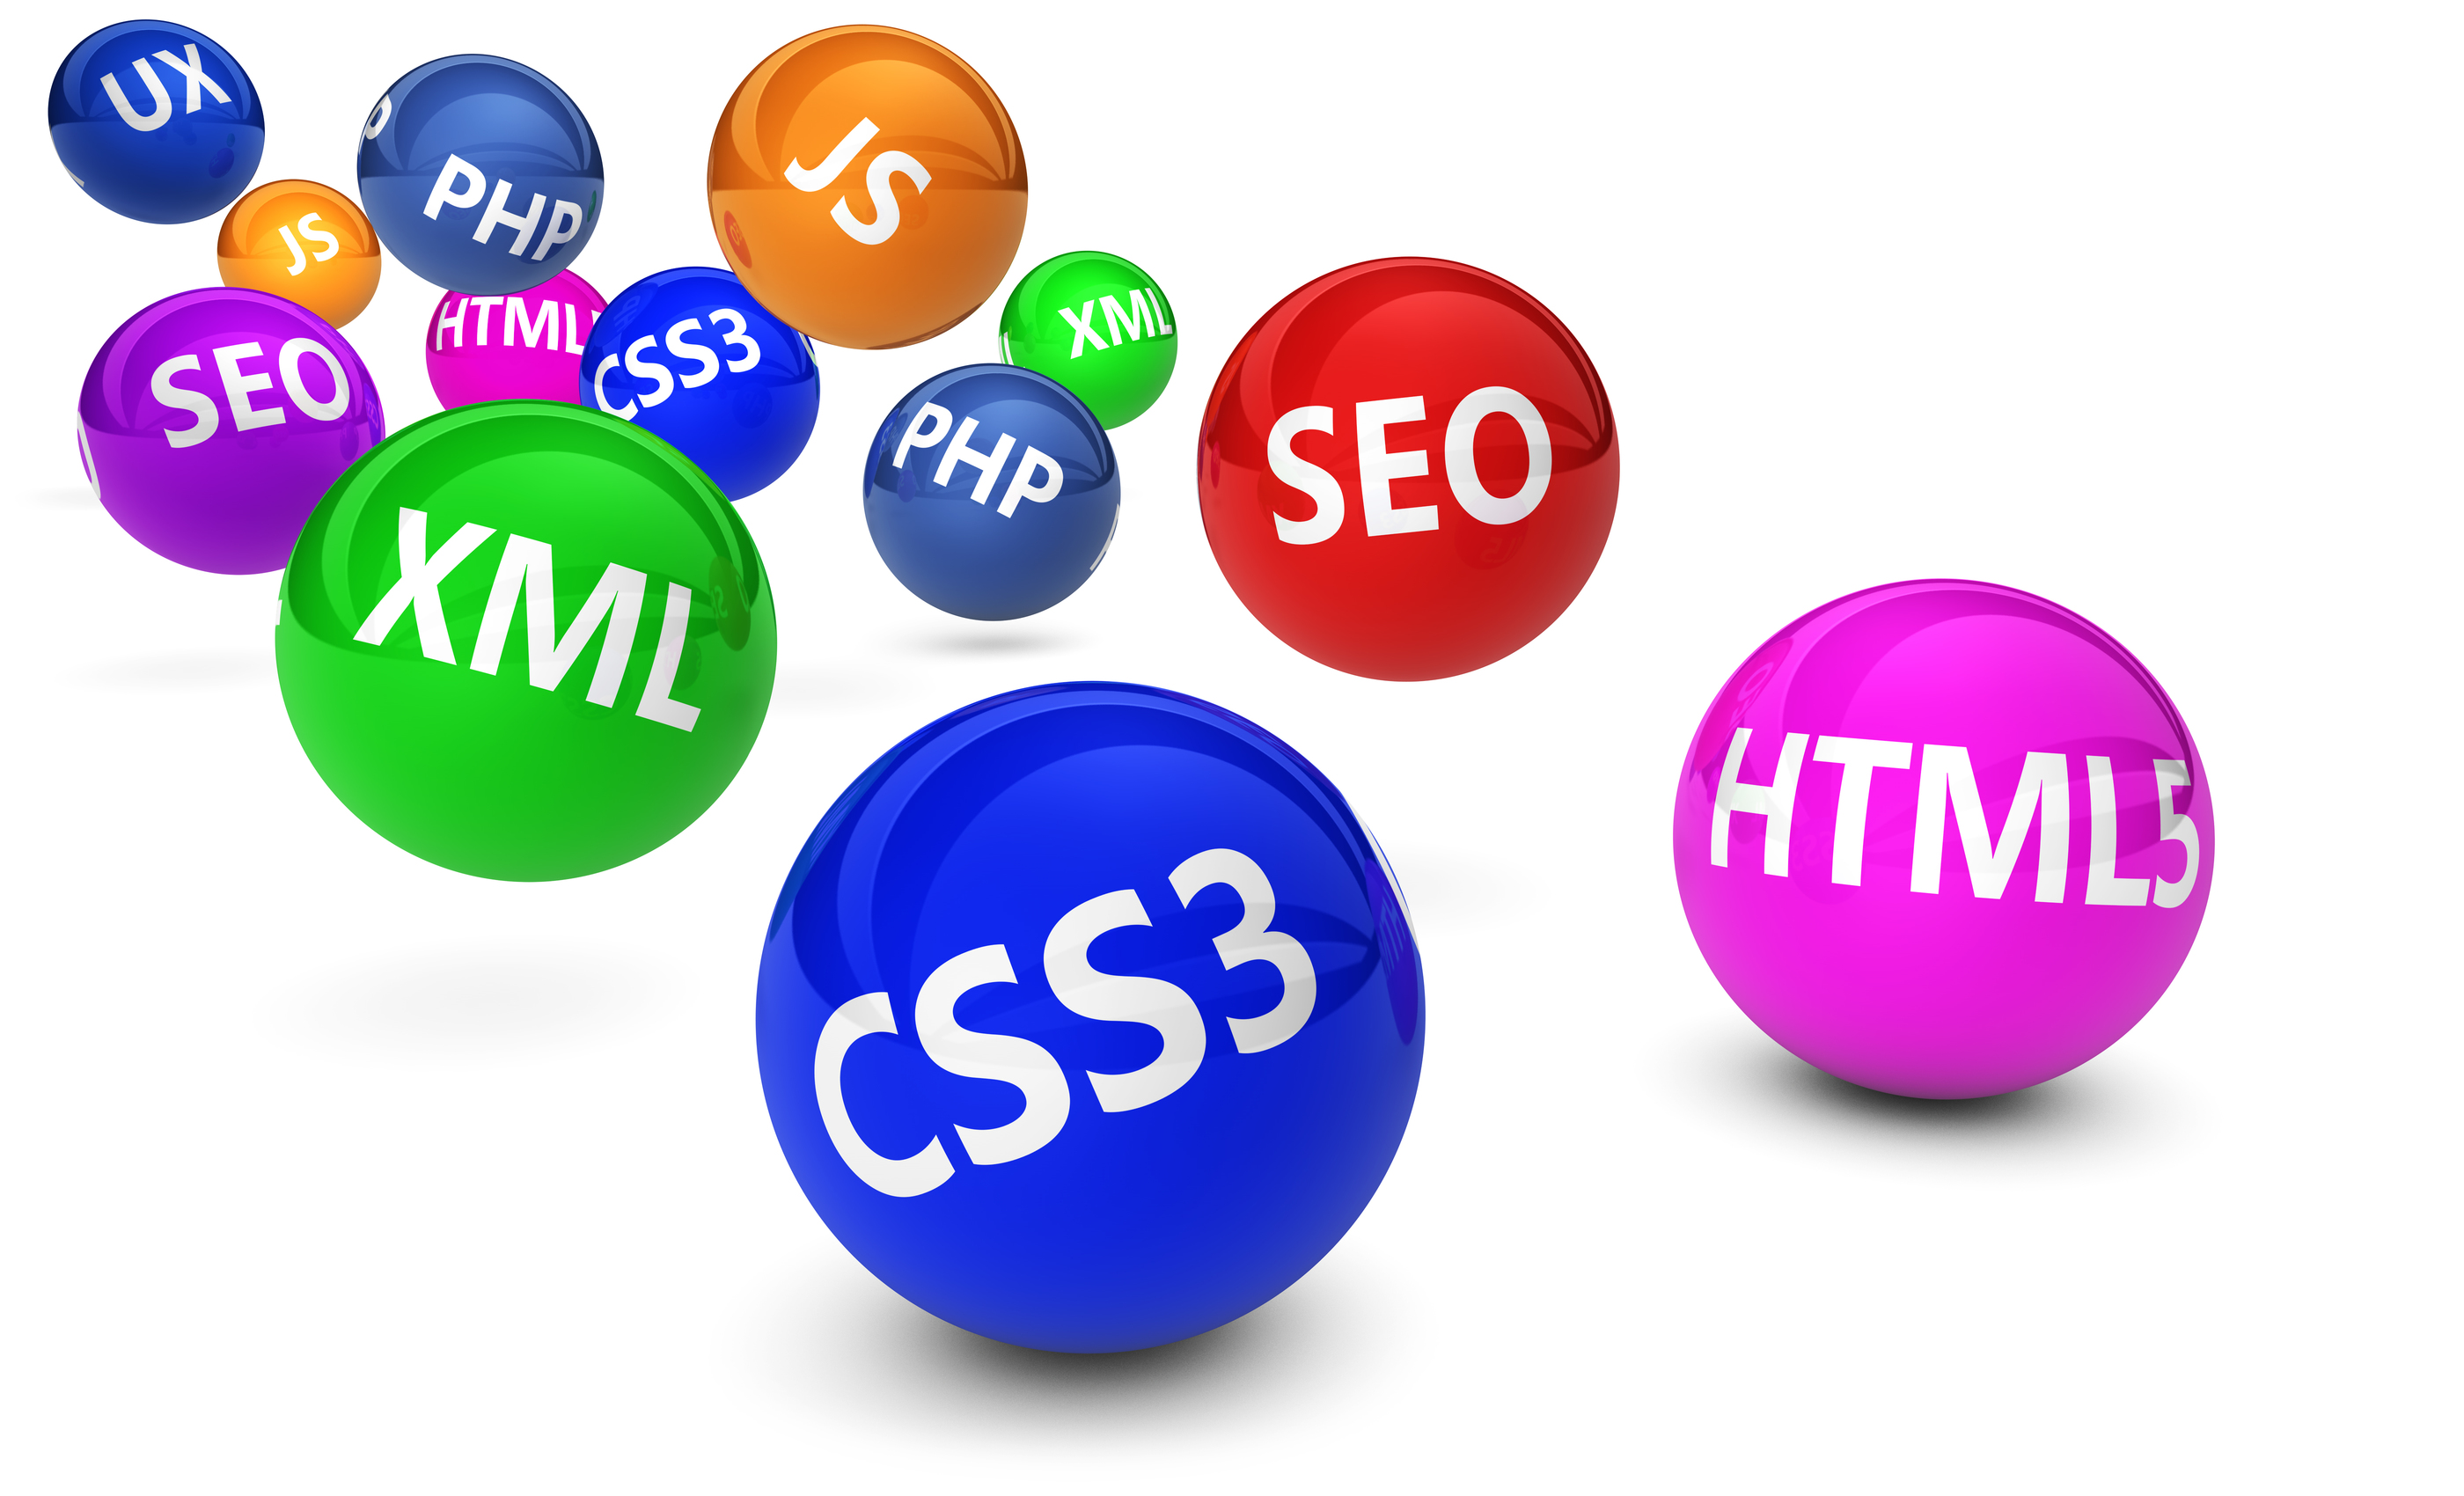 Webdesign, Internet and SEO concept with programming language sign on colorful bouncing spheres on white background.